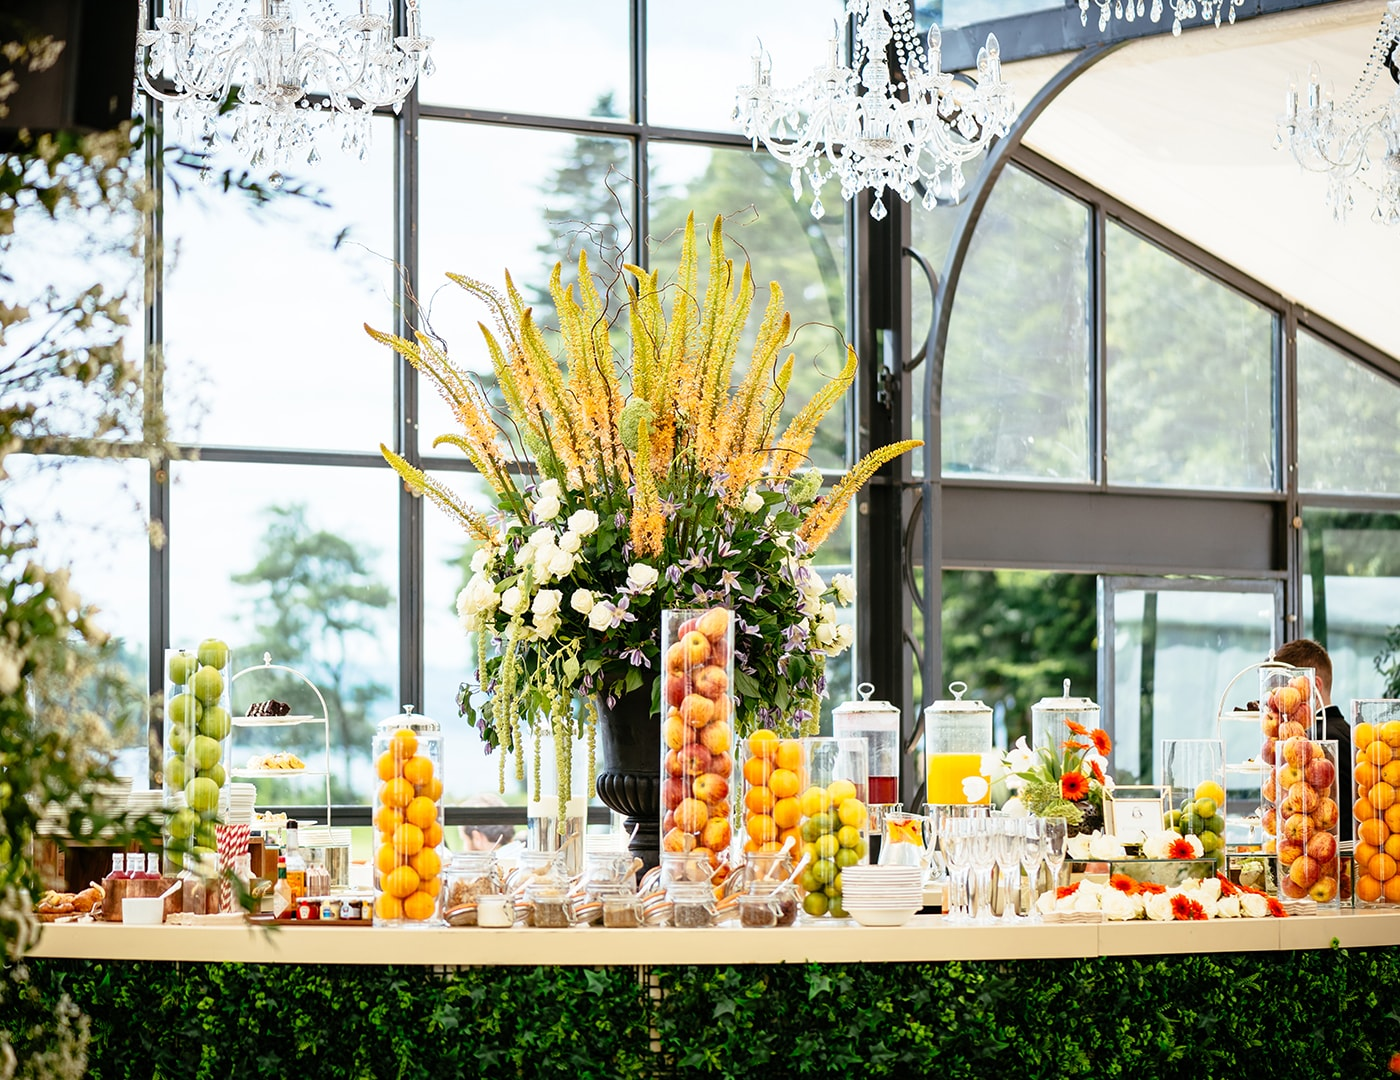 Lakeside Brunch, Ashford Castle, Wedding ceremony, Marquee ceremony, Event planner in Ireland, Wedding Planner in Ireland, Destination Weddings, Olivia Buckley International